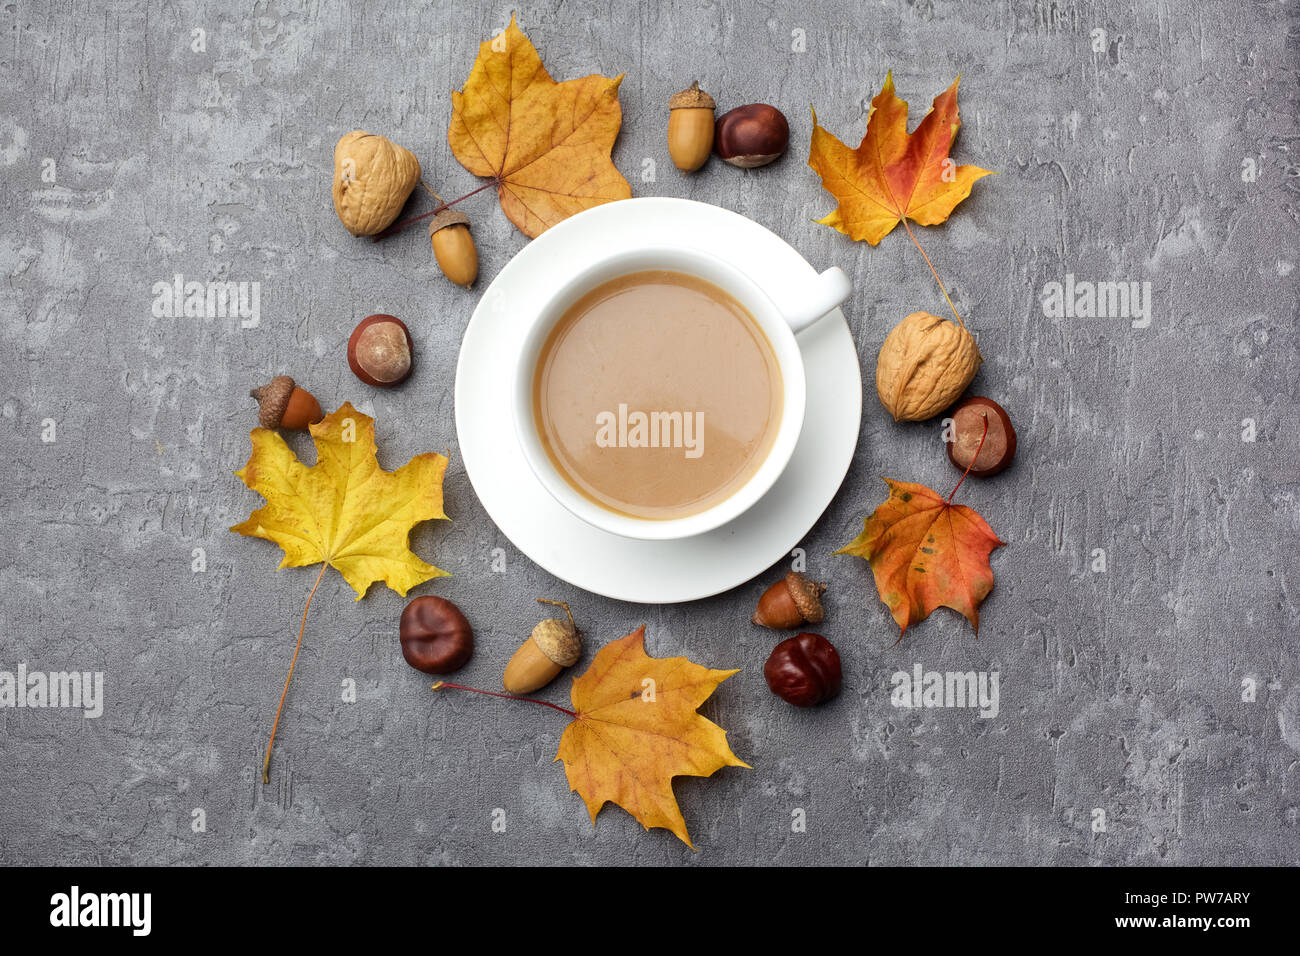 Autumn composition. Cup of coffee, autumn leaves on grey background. Flat lay. Stock Photo